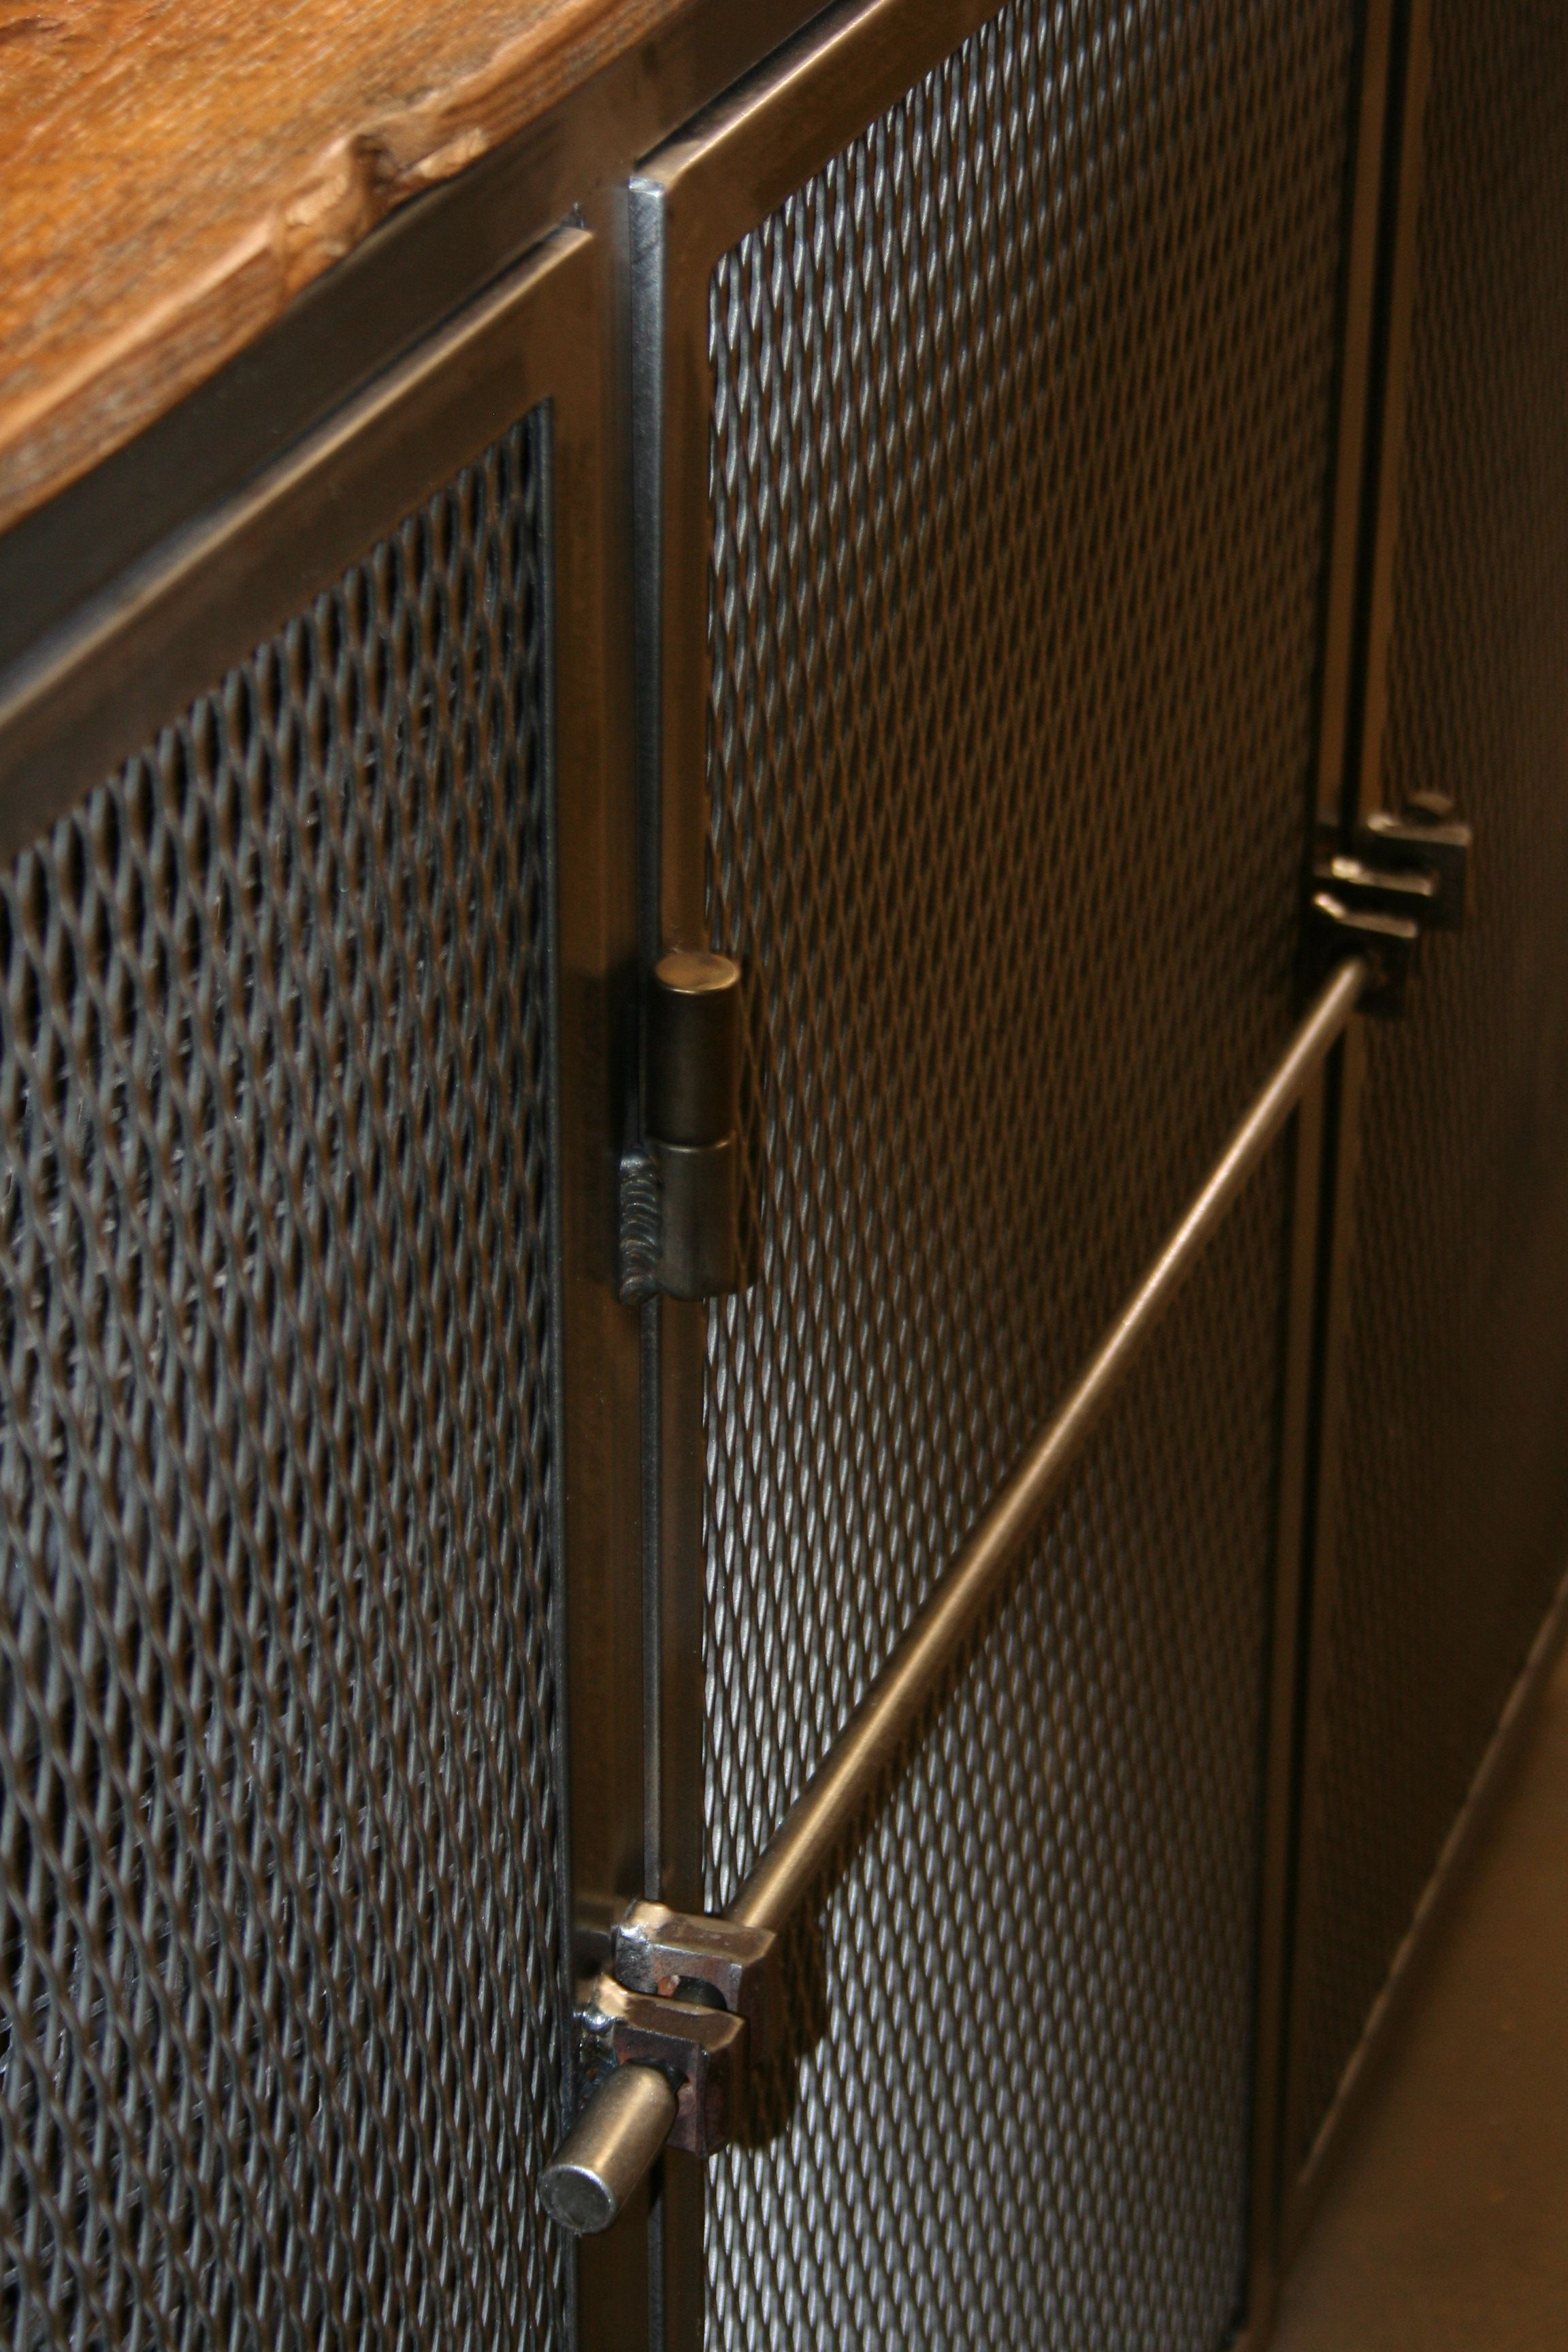 Pin By Metal Fred On All Steel Pieces Metal Door Perforated Metal Expanded Metal